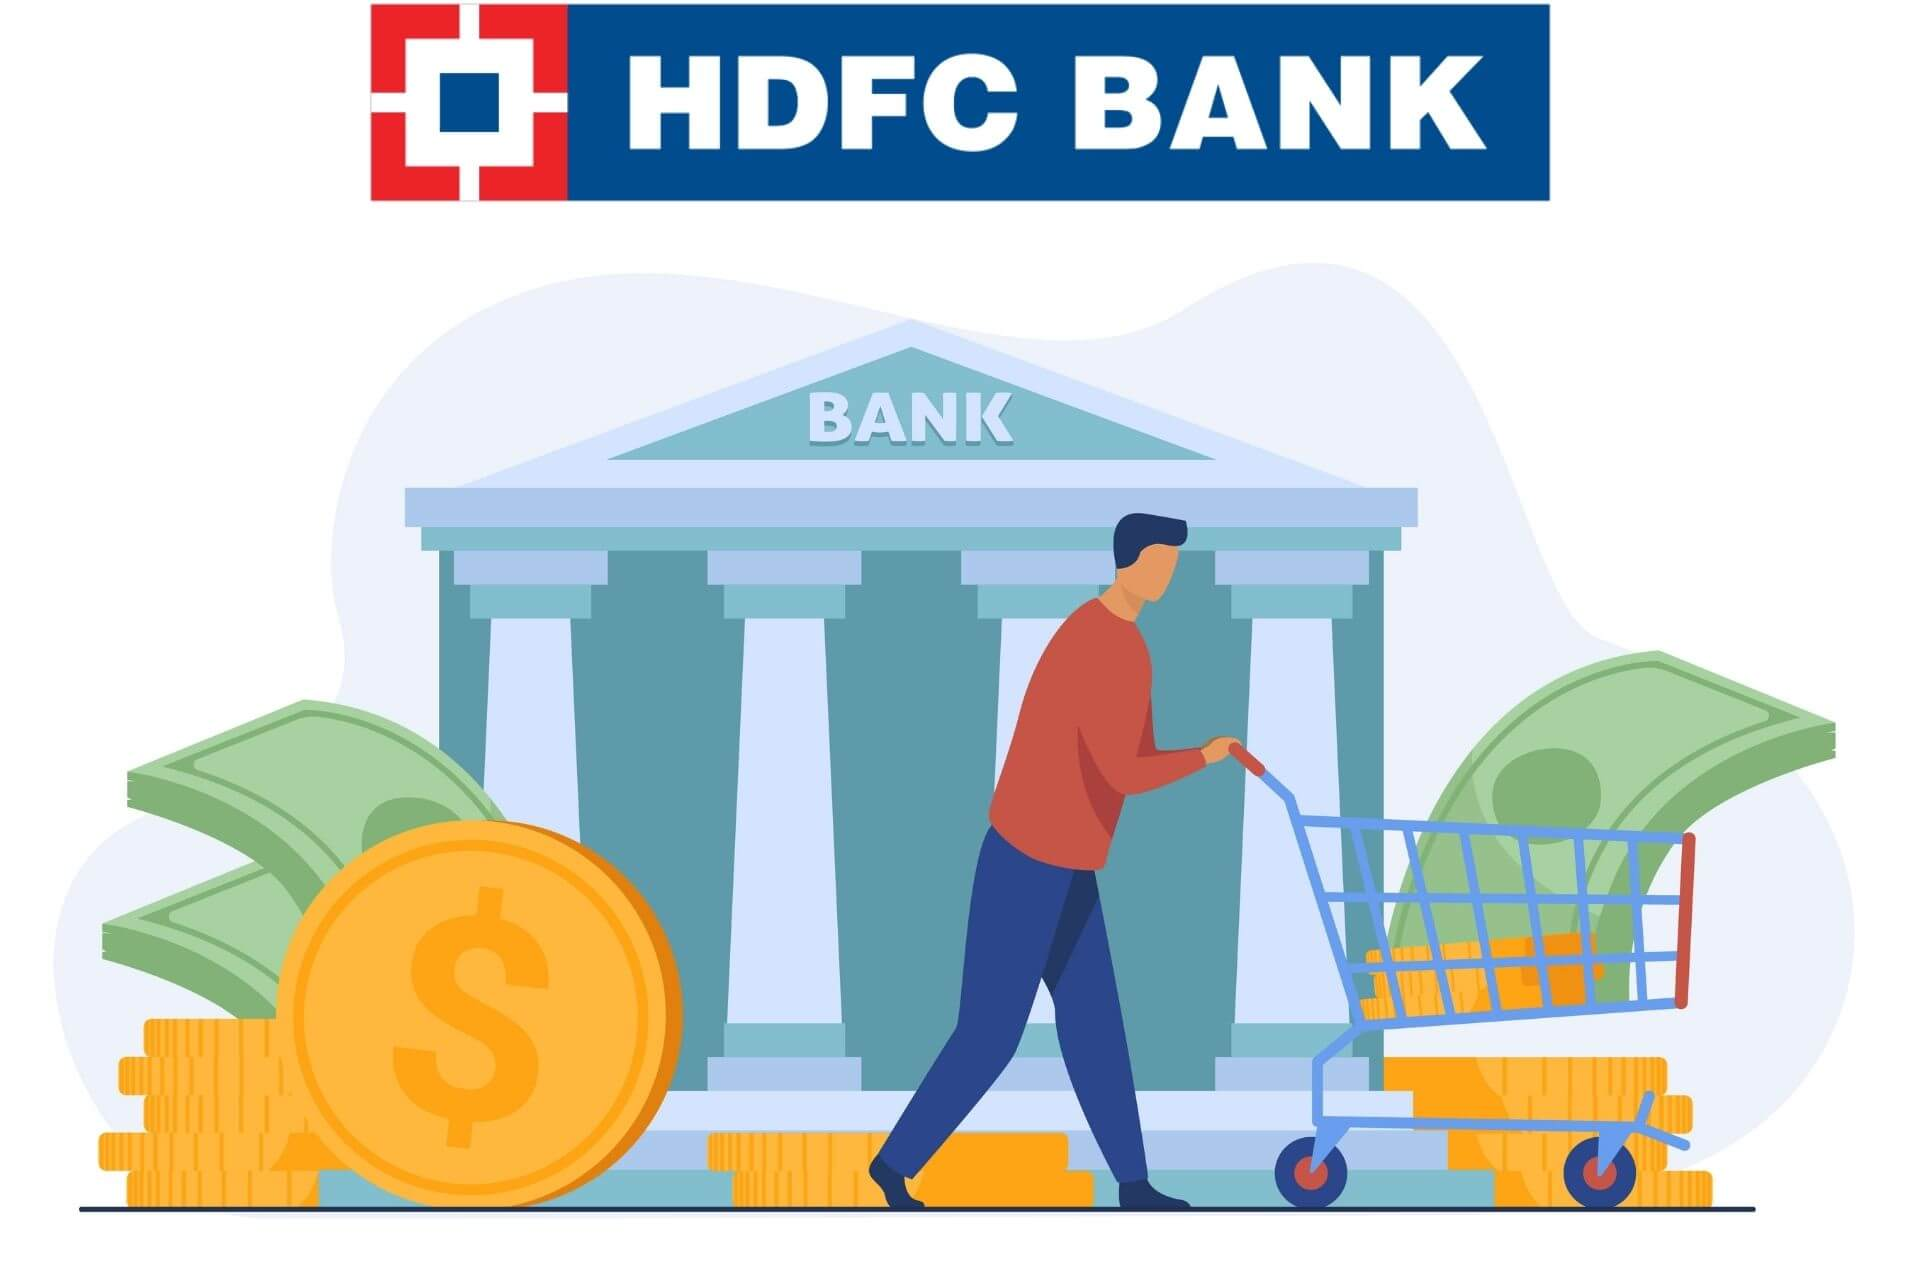 HDFC Bank case study 2021